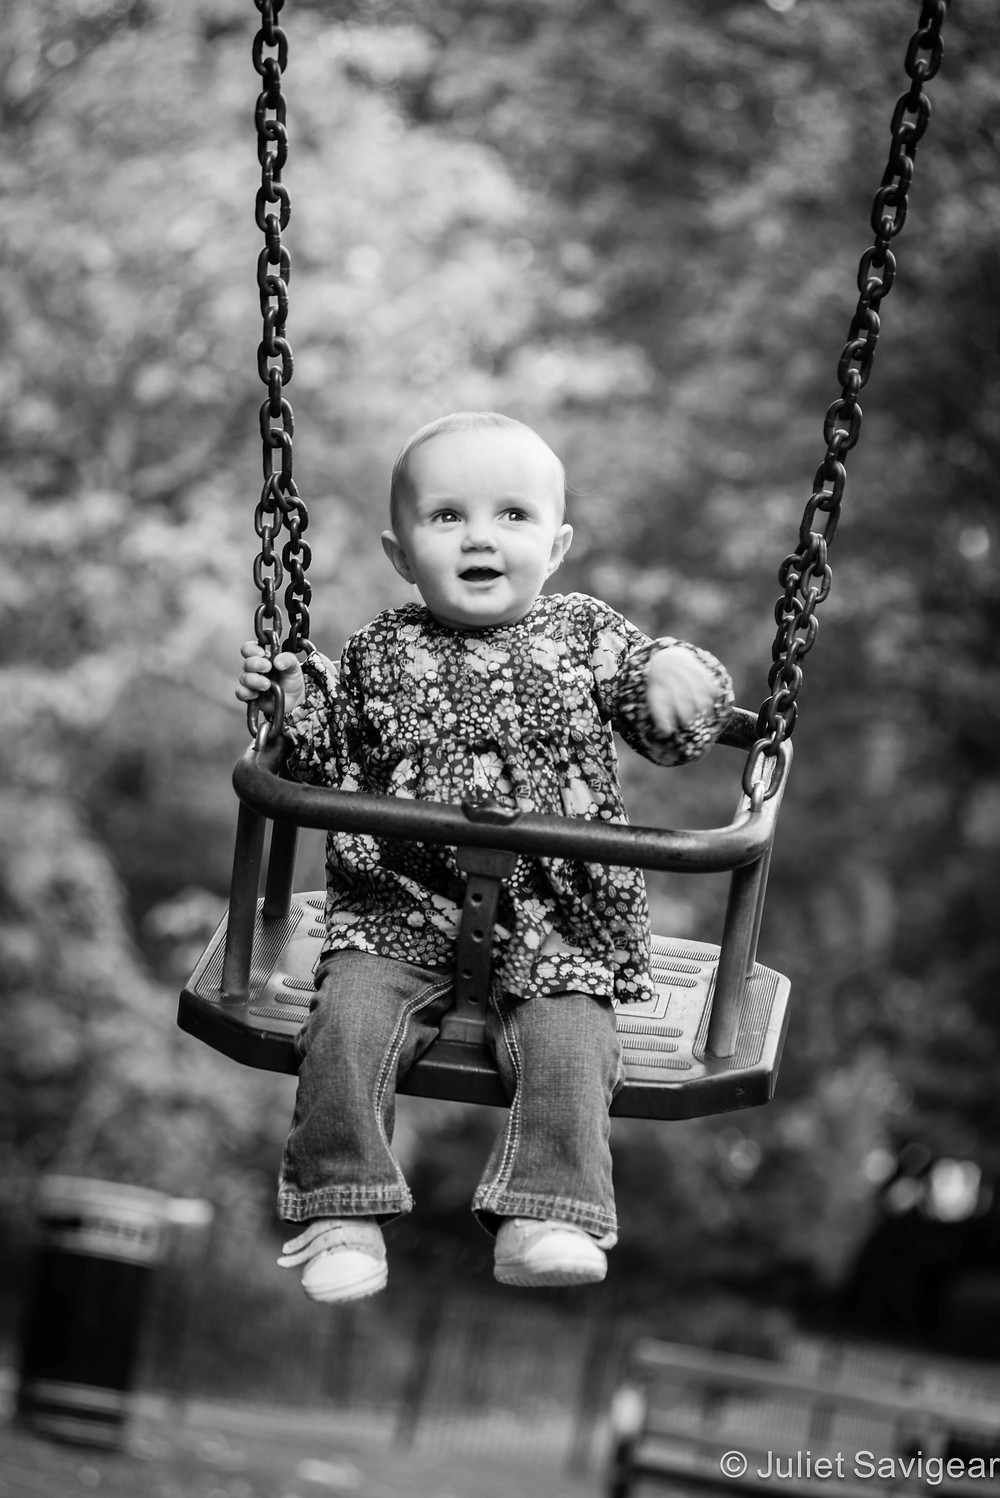 On The Swing - Family Photography, Waterlow Park, Highgate